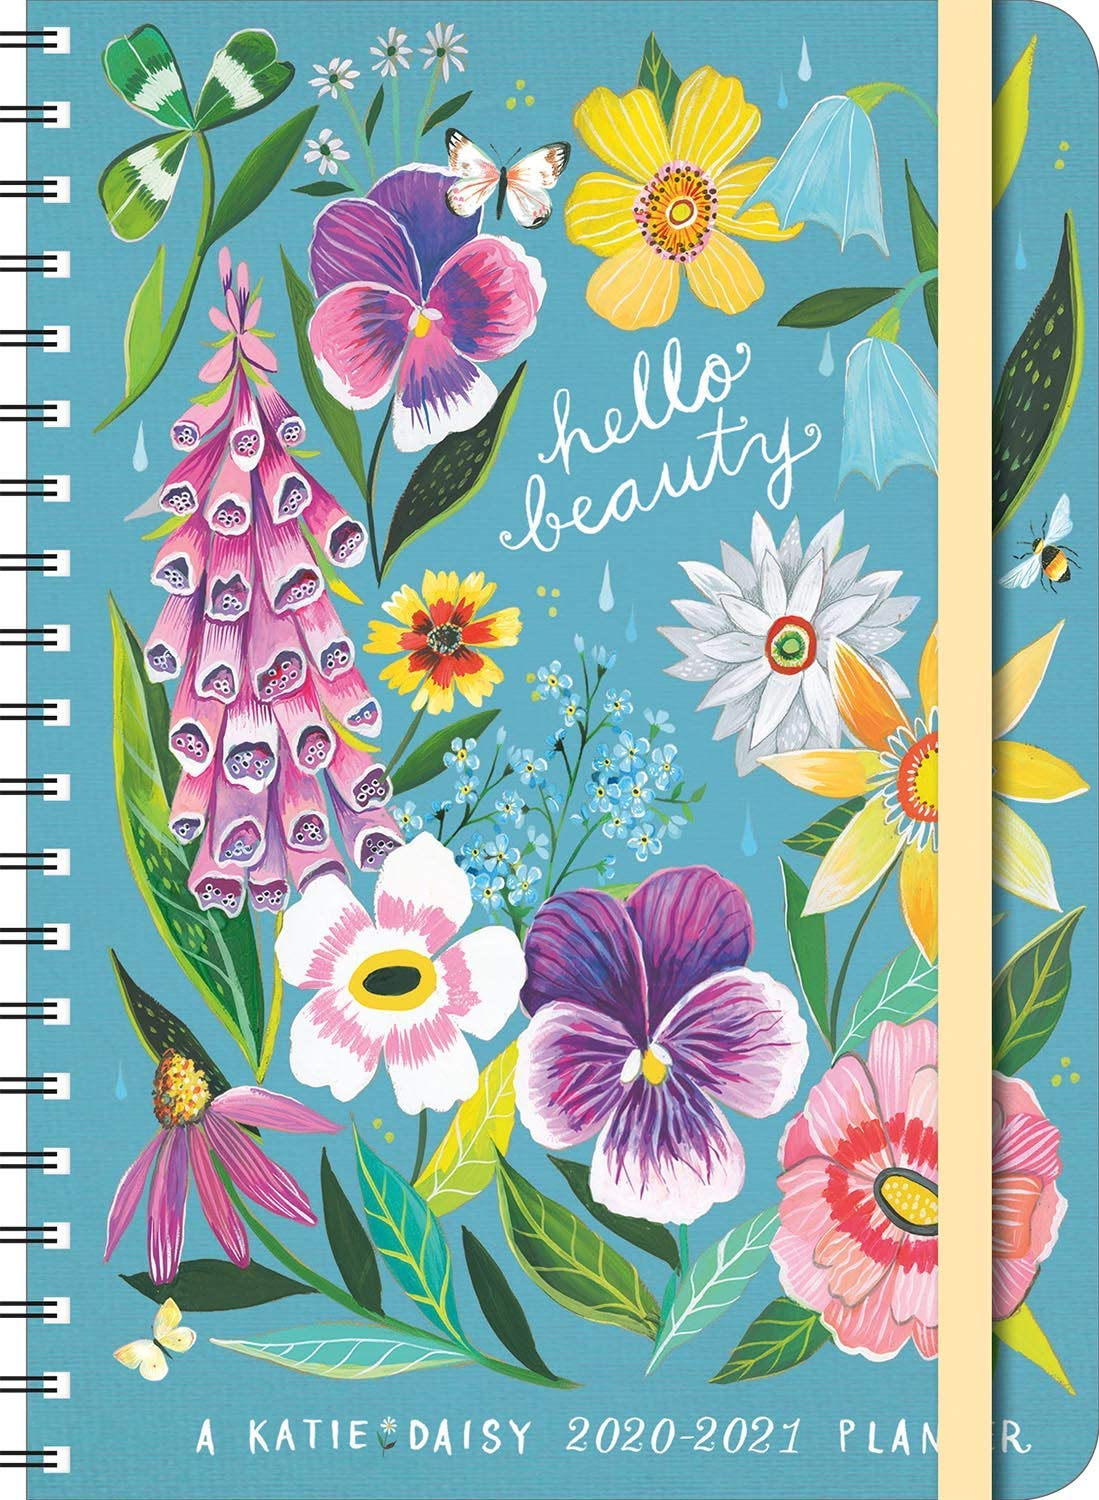 2020 2021 Katie Daisy Planner 2020 21 On The Go Weekly Planner Daisy Katie Amber Lotus Publishing 0762109071205 Books Amazon Ca